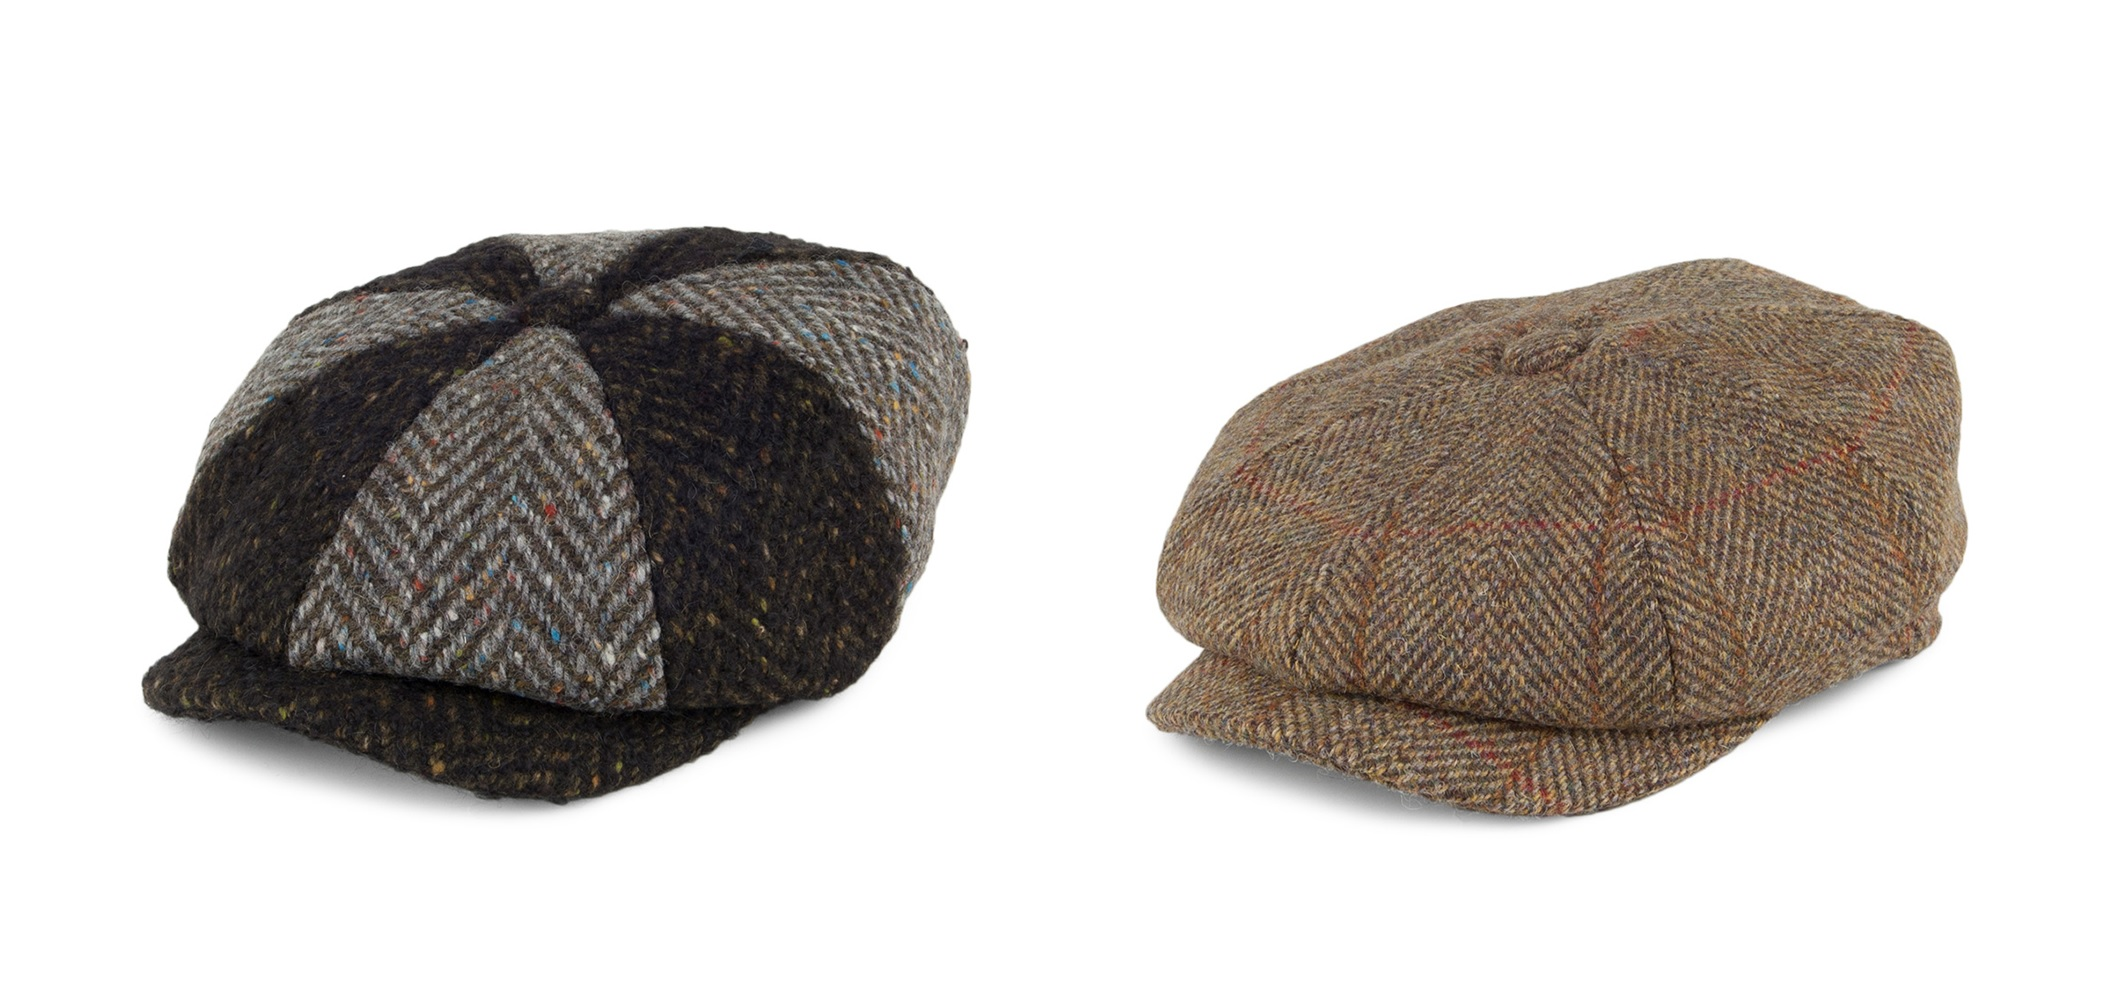 Carloway Harris Tweed Bakerboy Hat by Failsworth